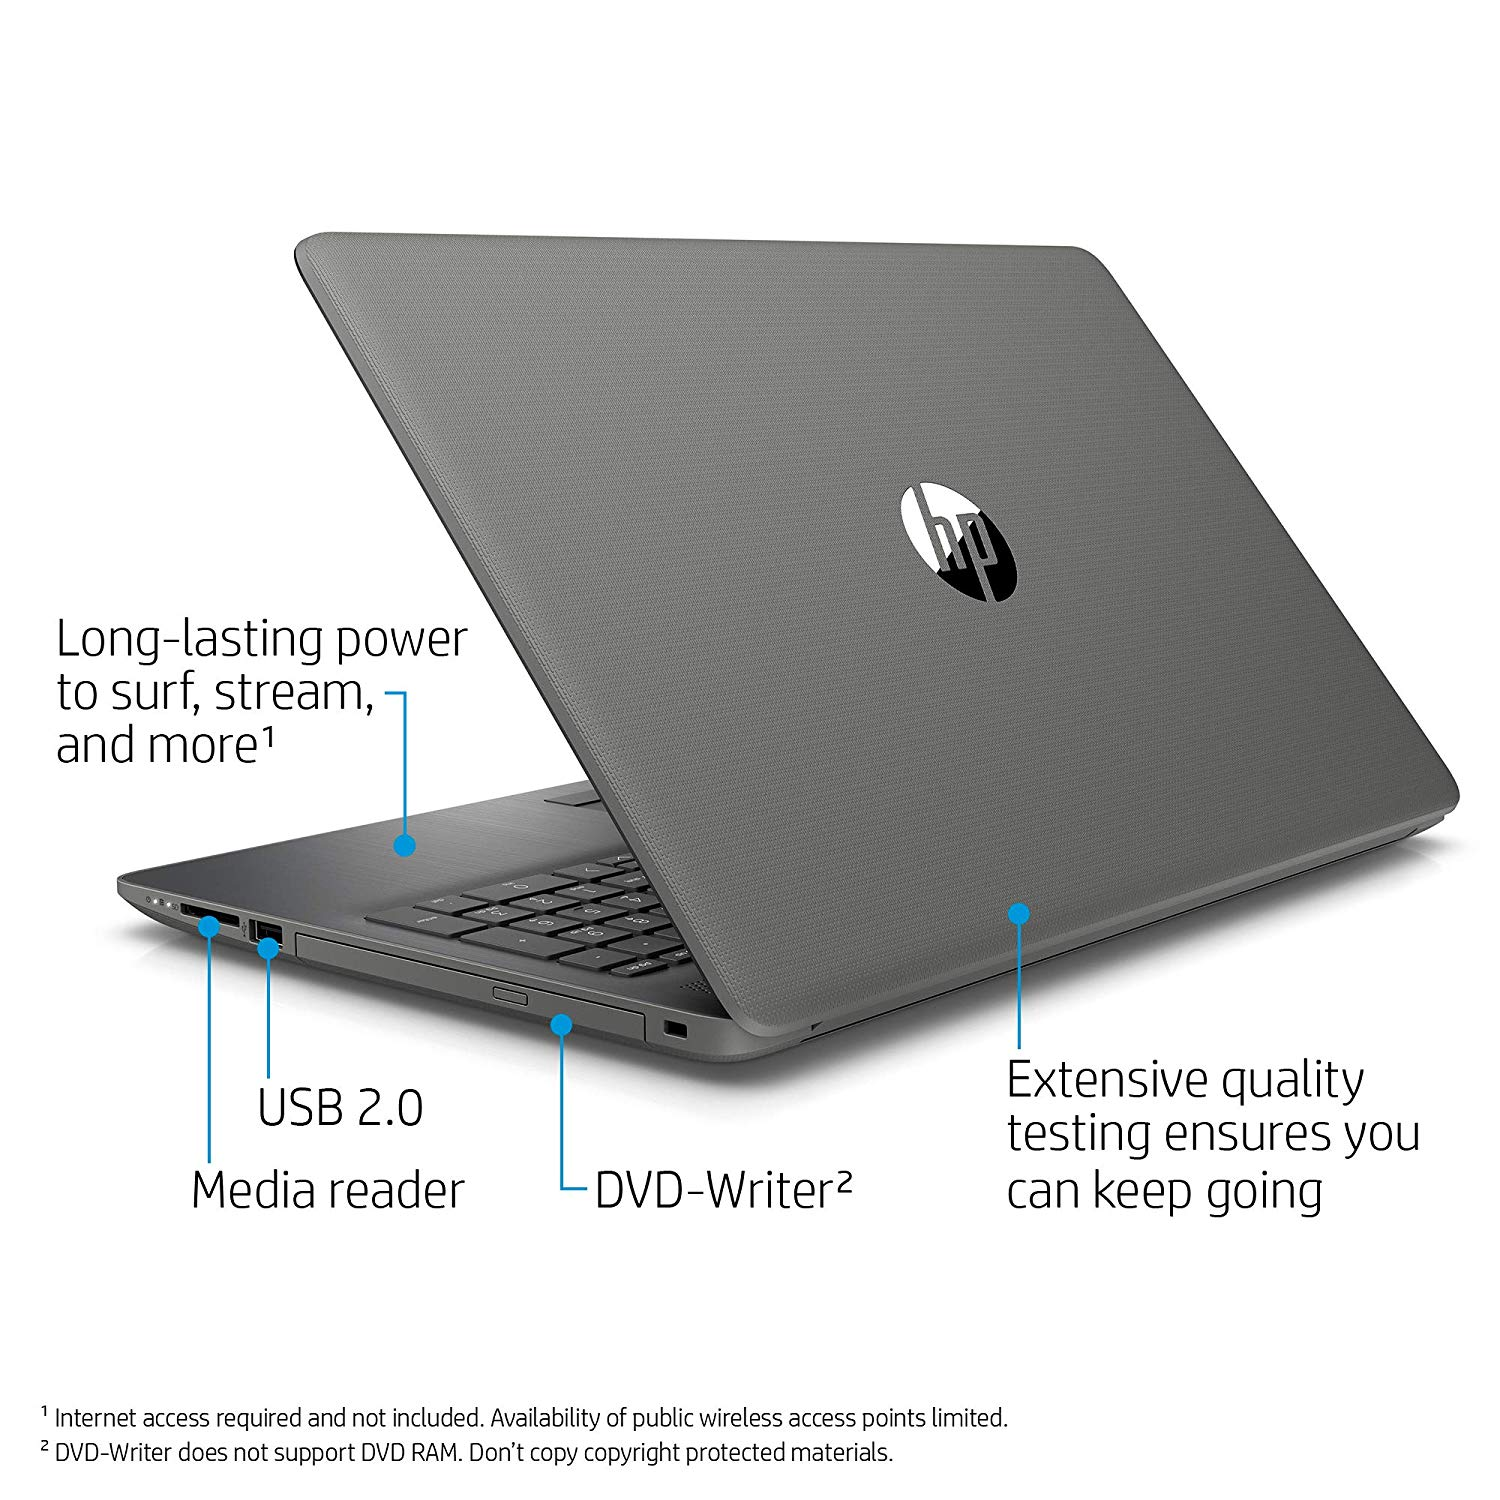 HP 15-da0400tu 15.6-inch Laptop (7th Gen Core I3-7020U/8GB/1TB/Windows 10, Home/HD 620 Graphics), Smoke Gray